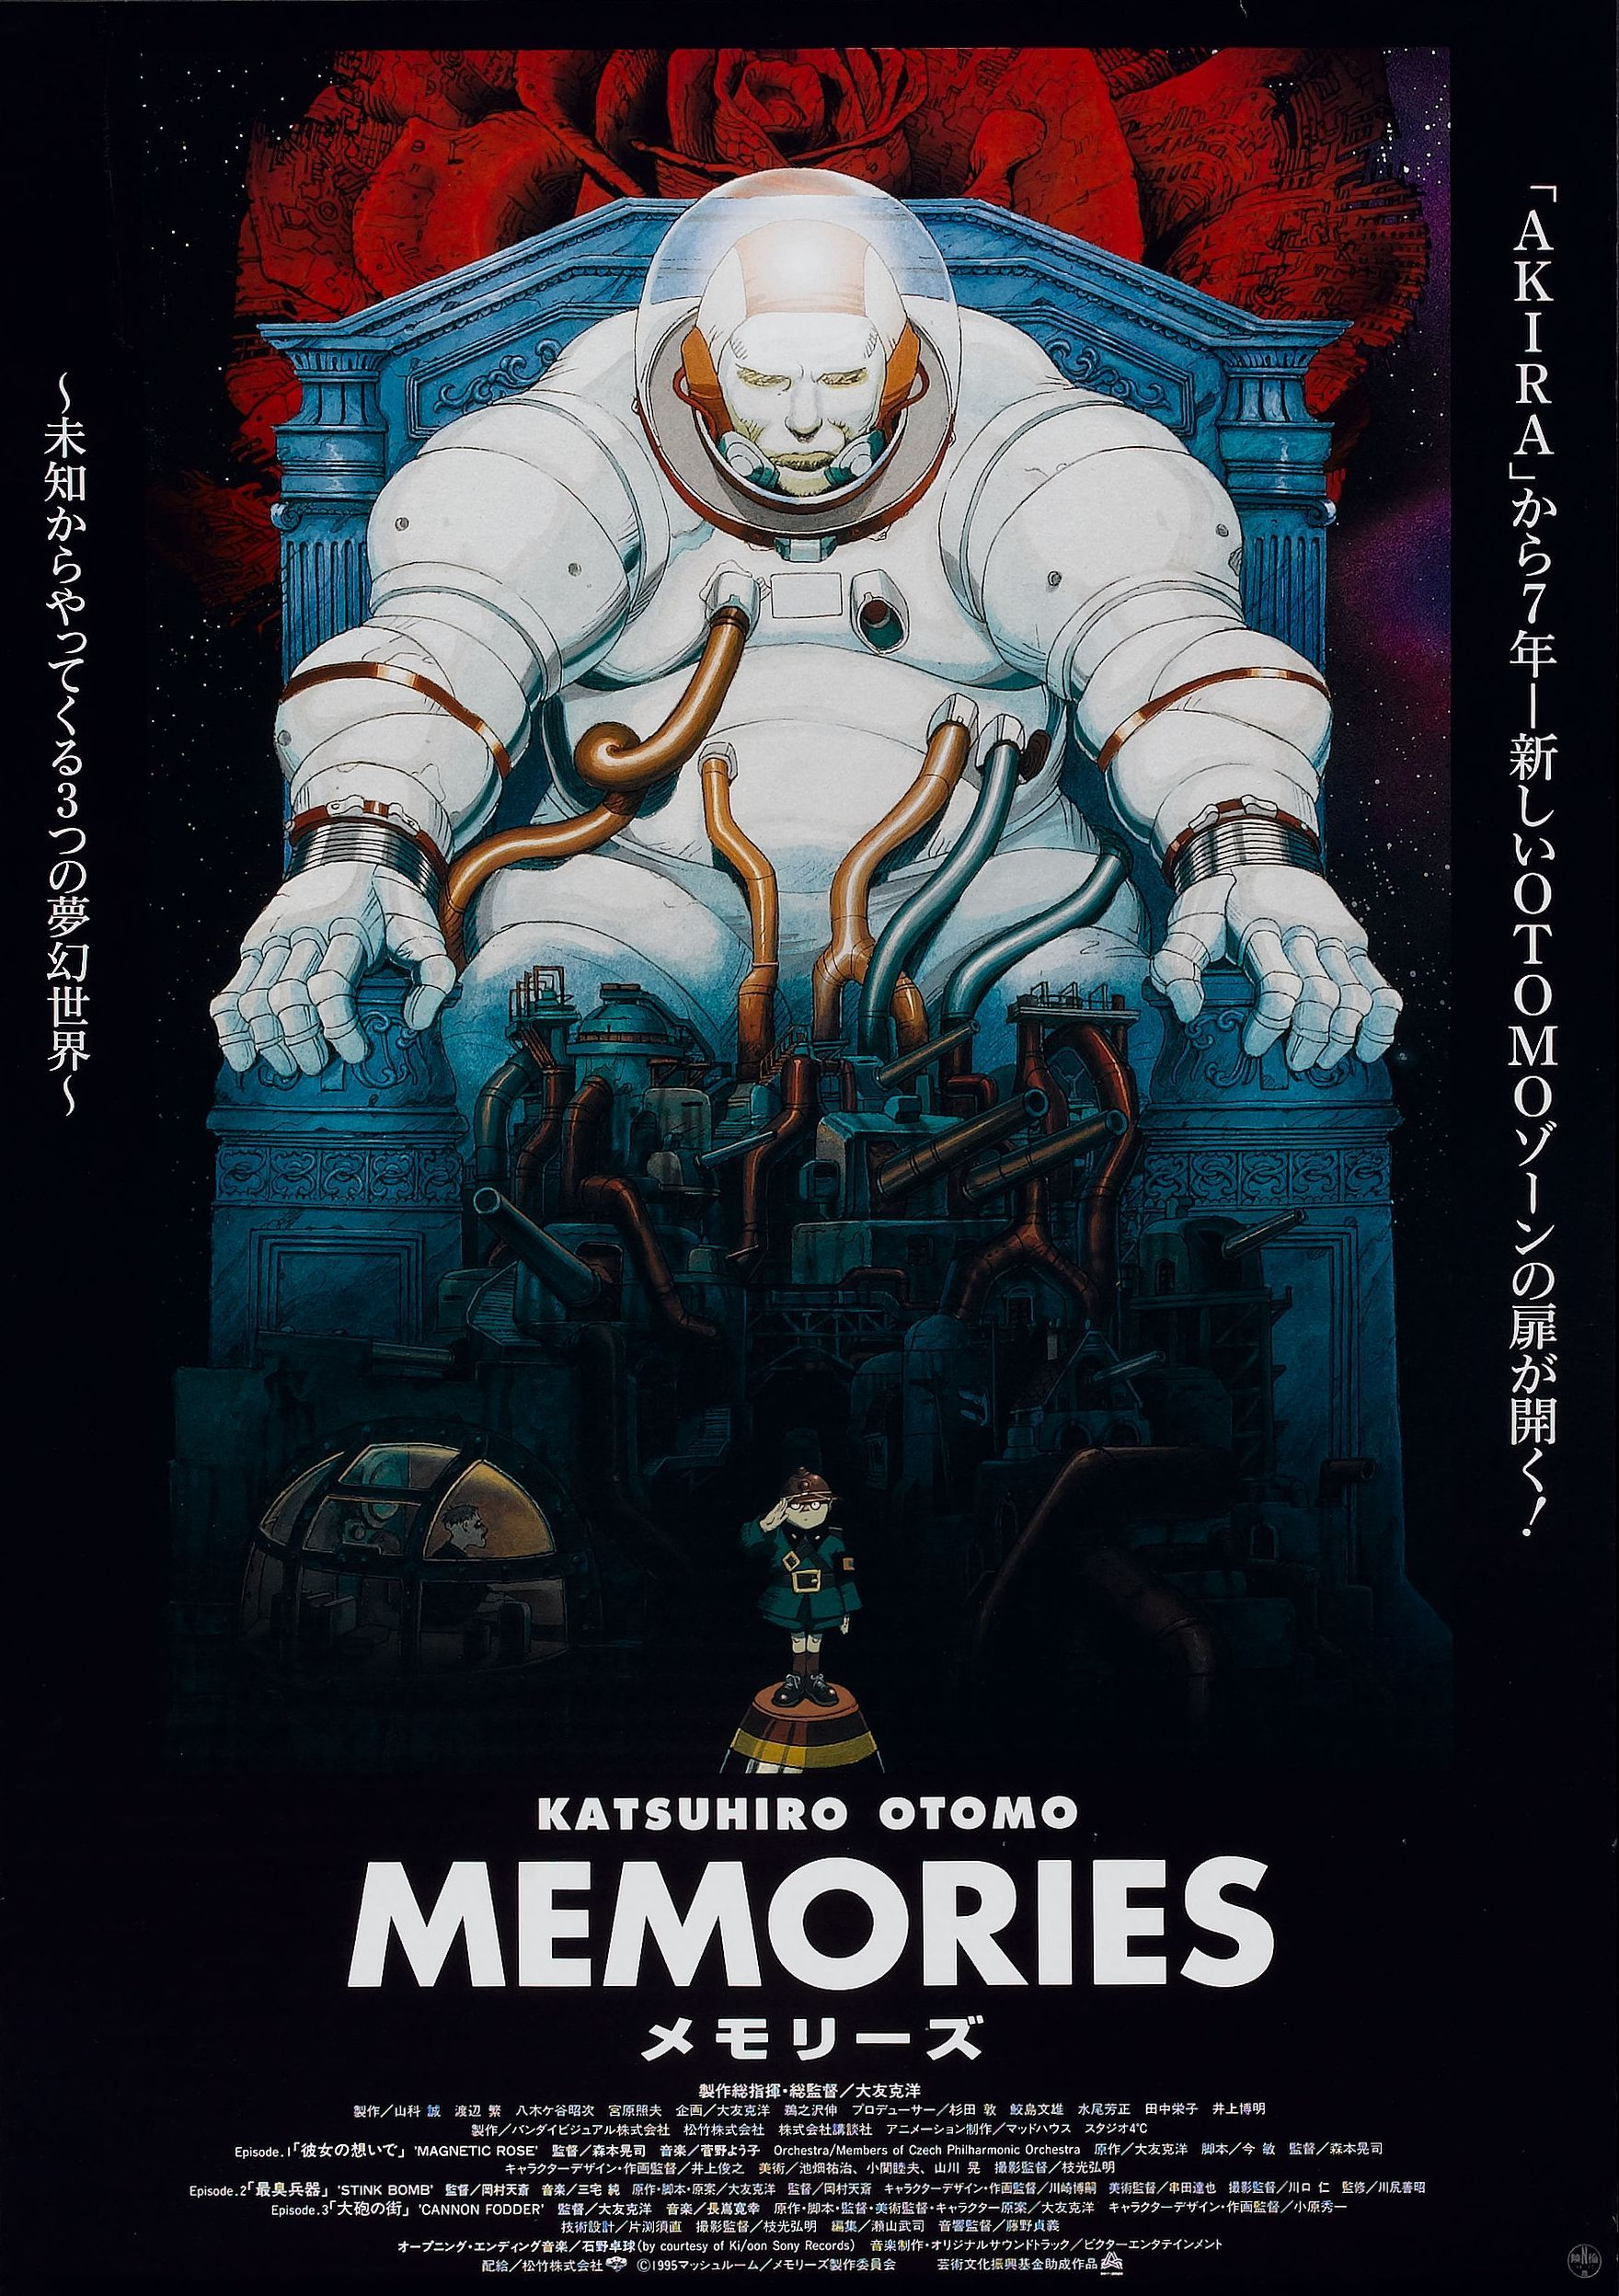 memories Anime posters